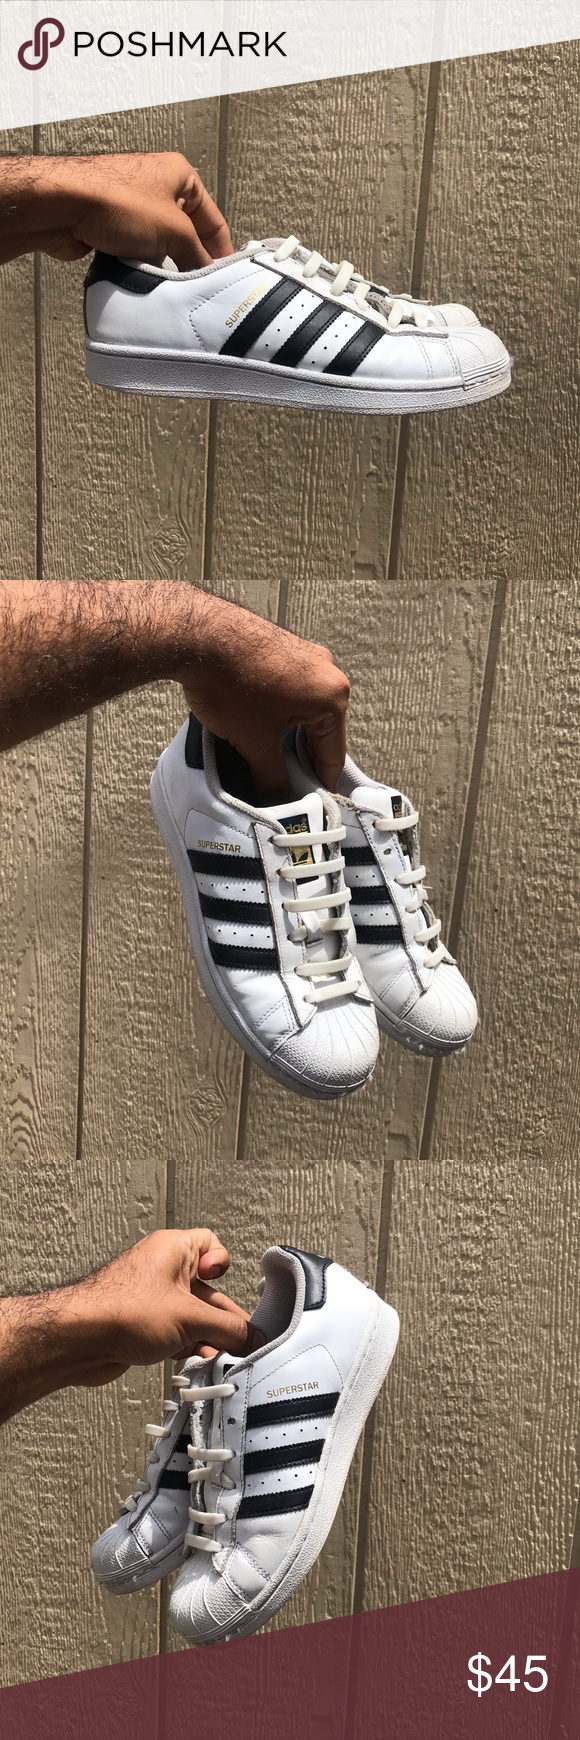 Adidas superstar | Adidas superstar, Shoes sneakers adidas, Shoe laces